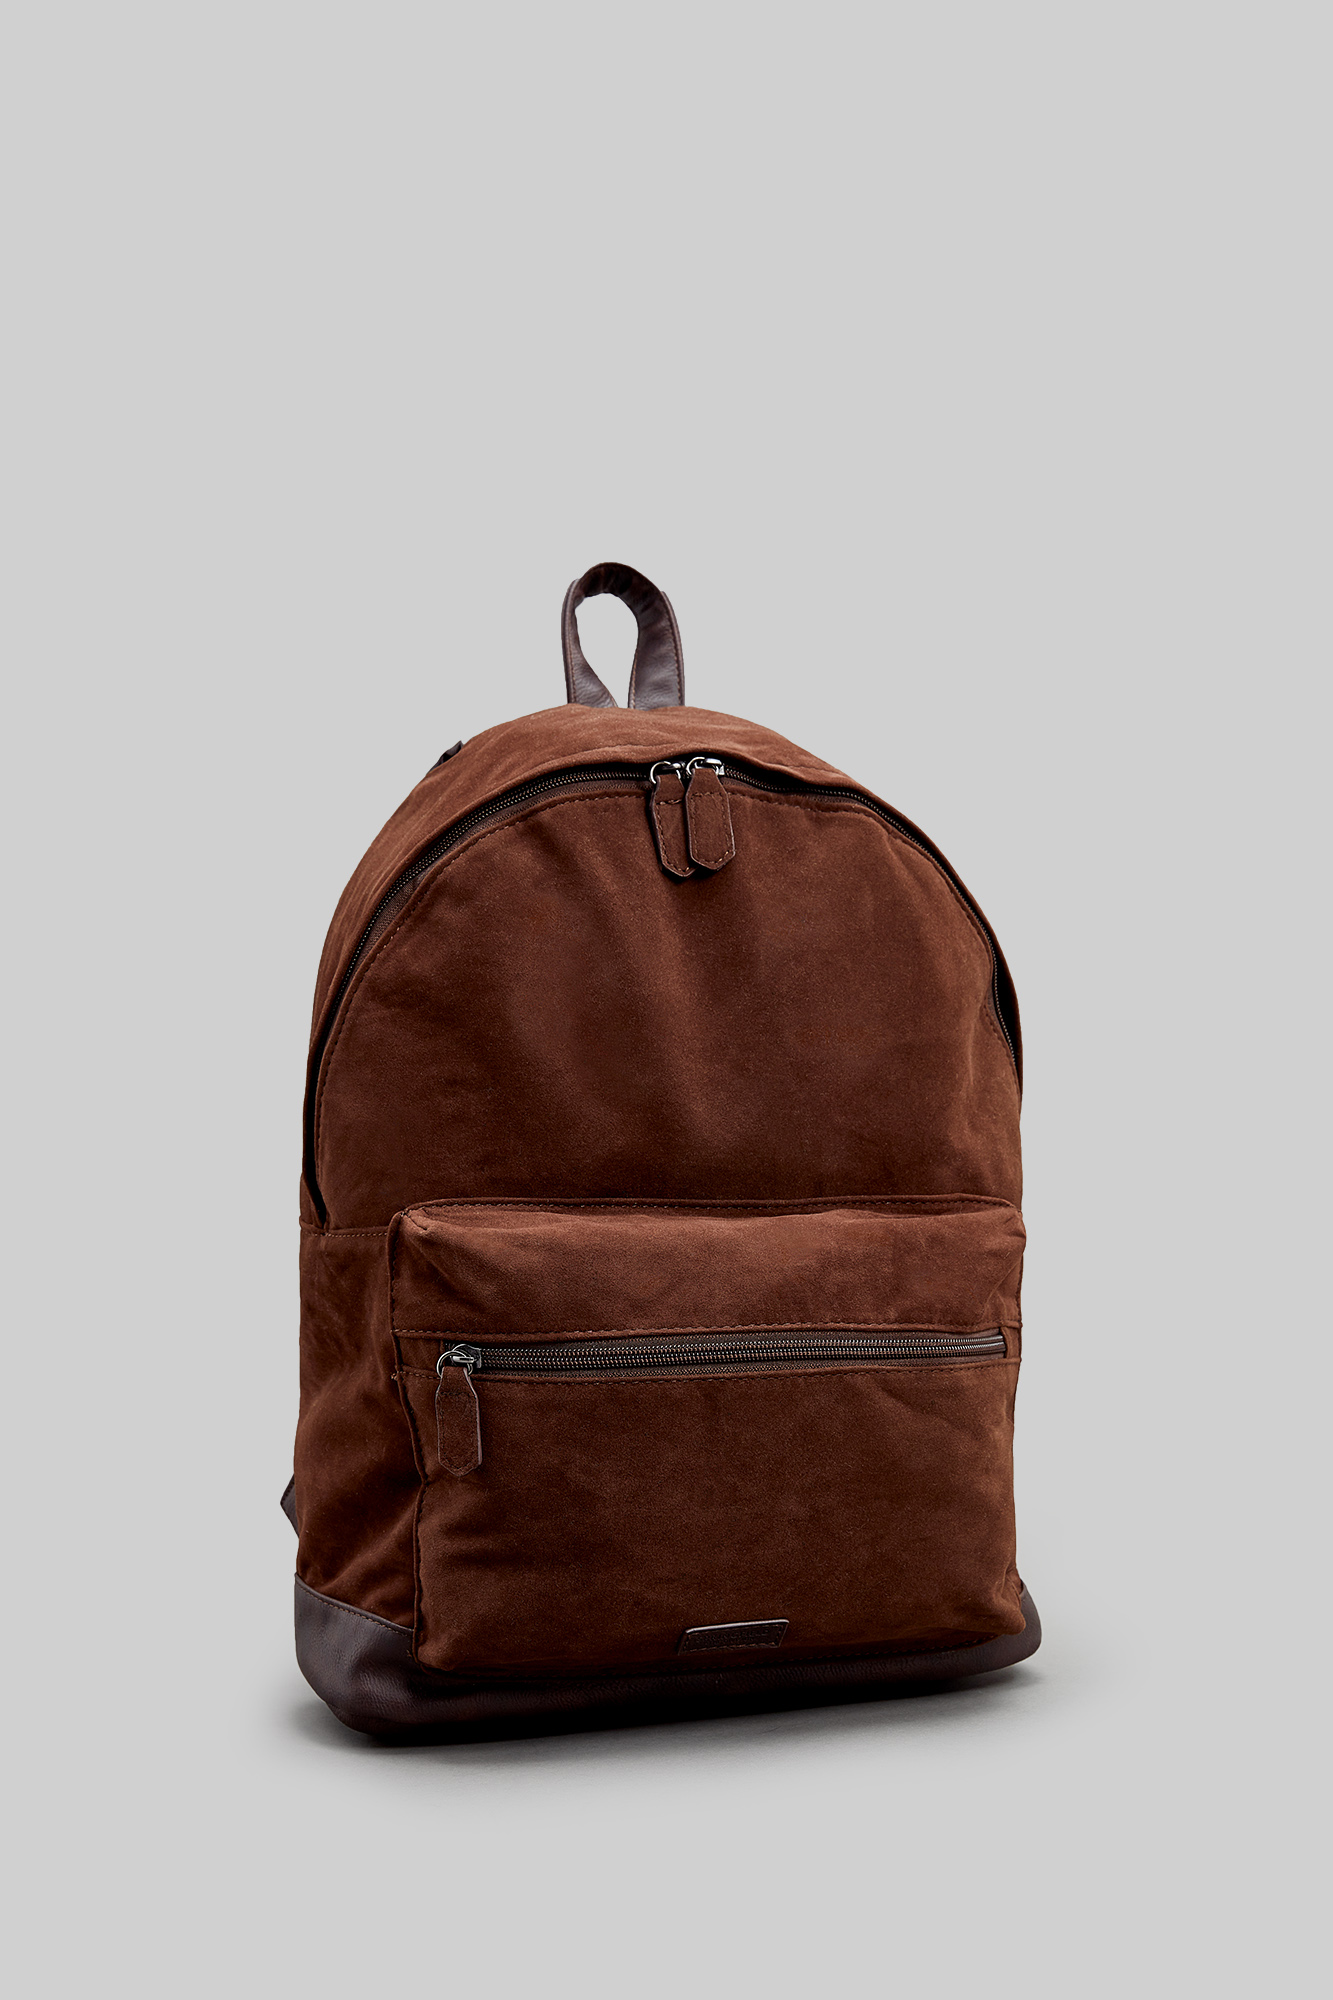 20632c79e9 Suede backpack